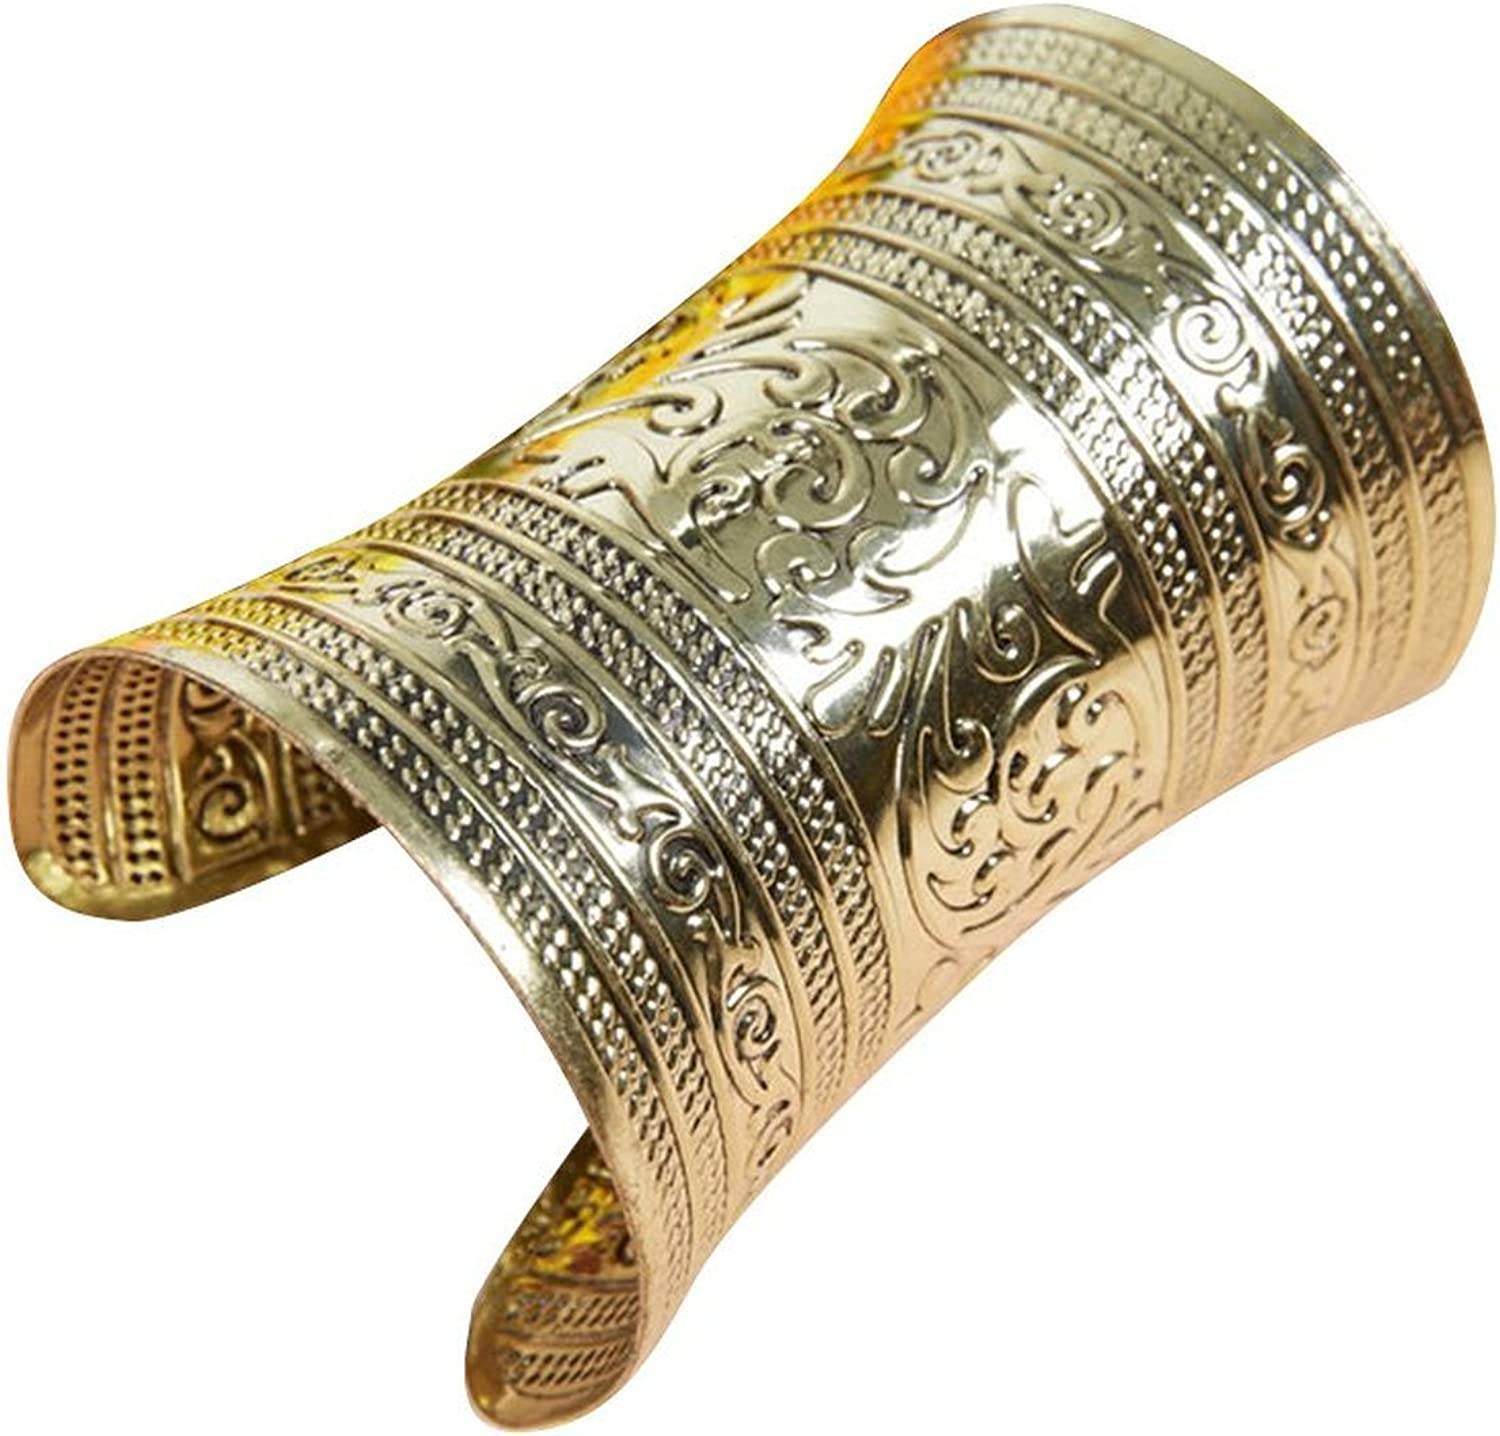 AvaCostume Bronze Tribal Gold Cuff Bracelet for Cosplay or Belly Dance